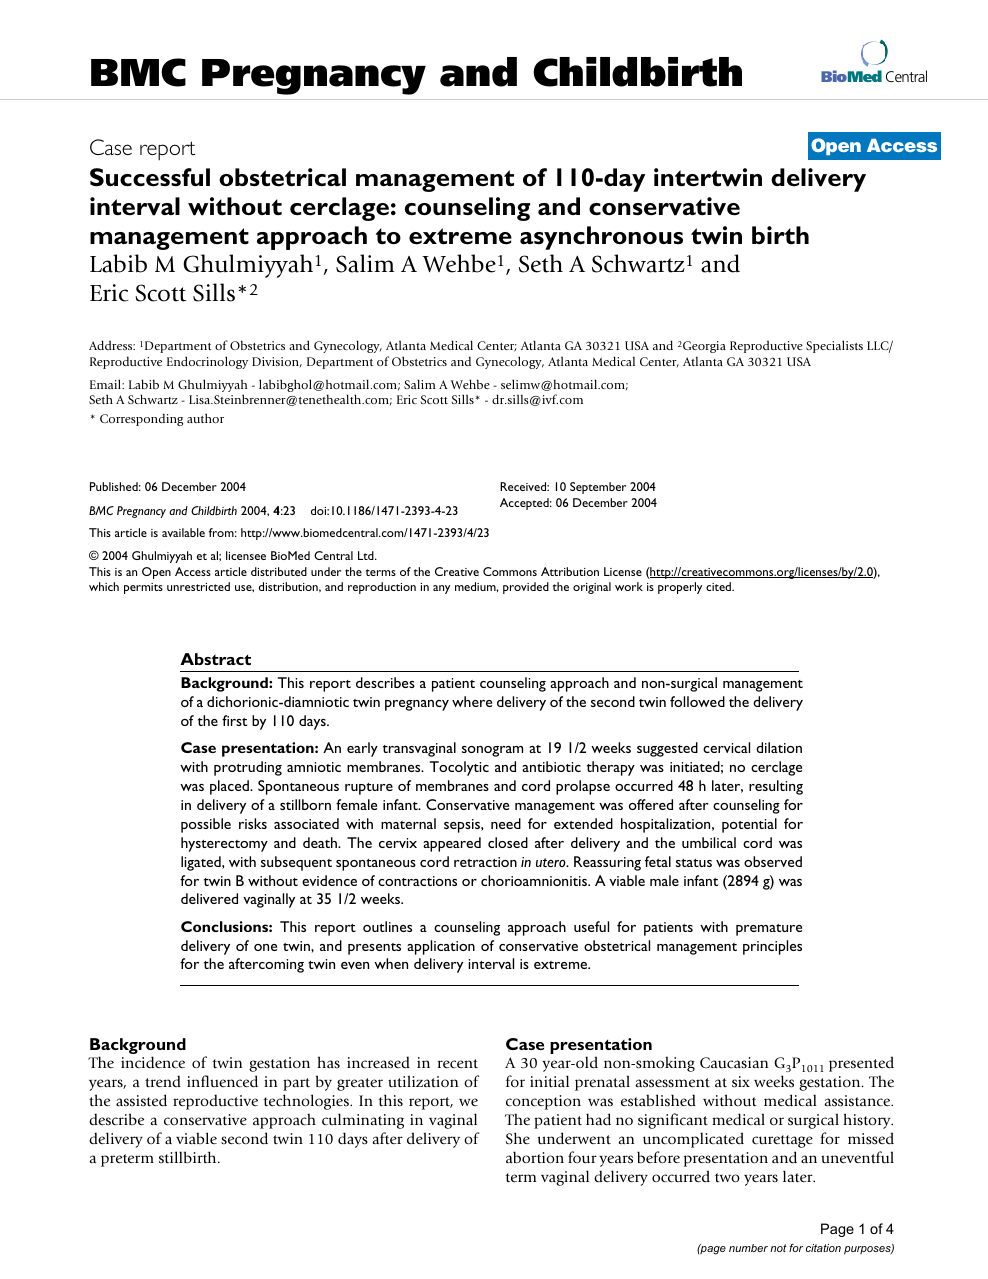 Successful obstetrical management of 110-day intertwin delivery